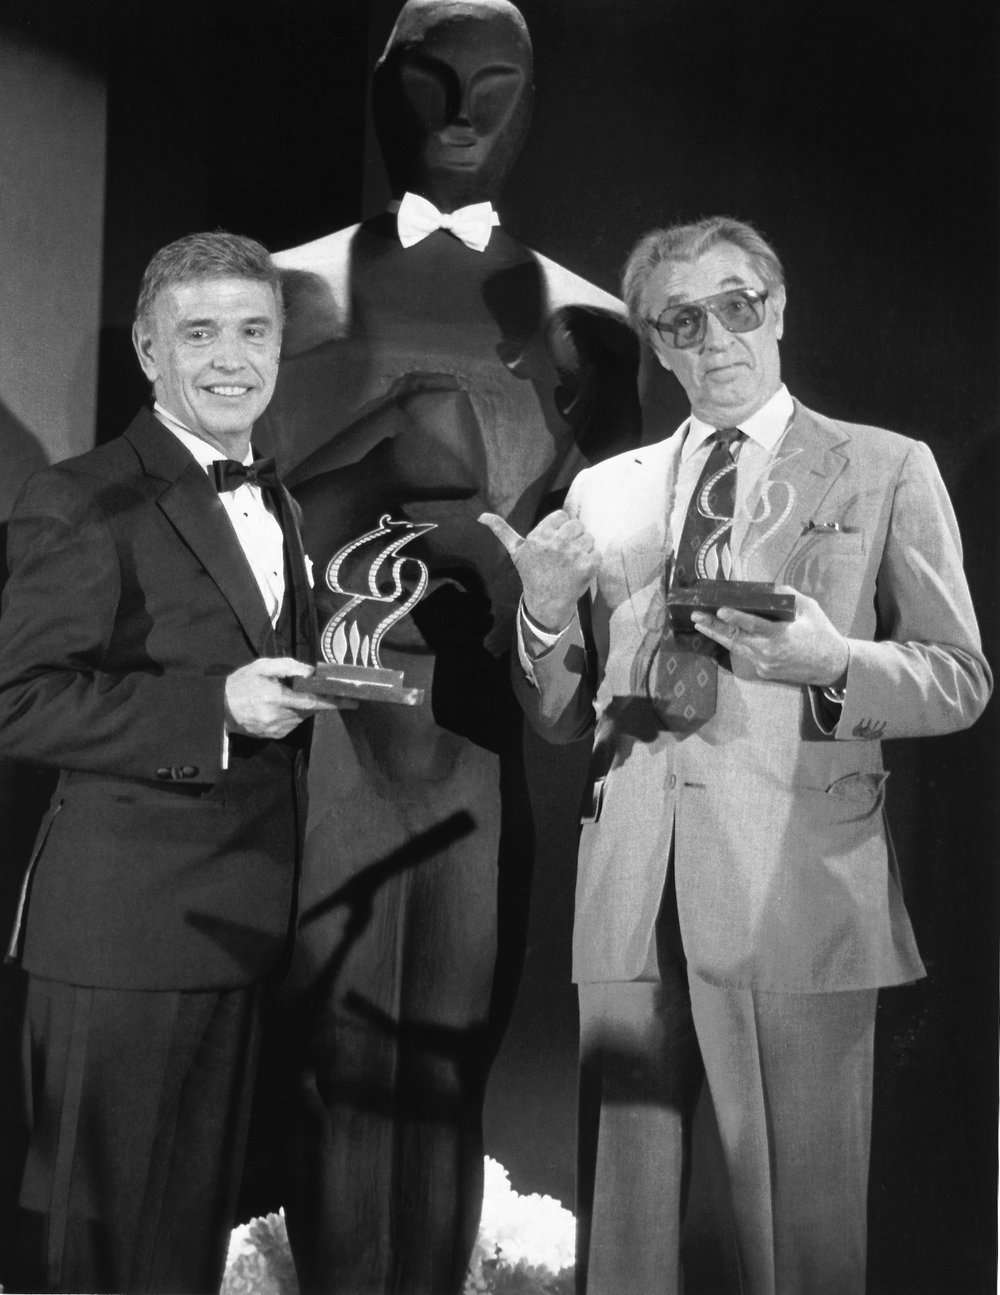 1967 Academy Awards, performance of 'Born Free', Roger with Robert Mitchum